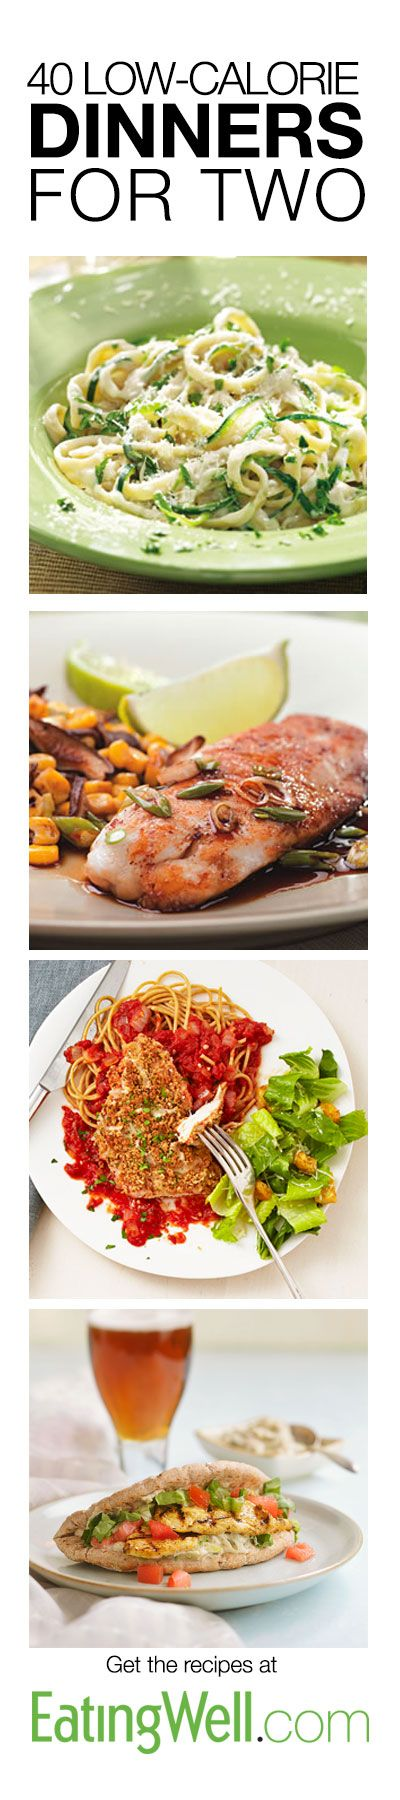 Barbecue Portobello Quesadillas for Two, Quick Chicken Cordon Bleu for Two, Creamy Garlic Pasta with Shrimp & Vegetables for Two, Curry Scallops & Cilantro Rice for Two, Chicken Shawarma for Two, Quick Chicken Parmesan for Two and many more on EatingWell.com